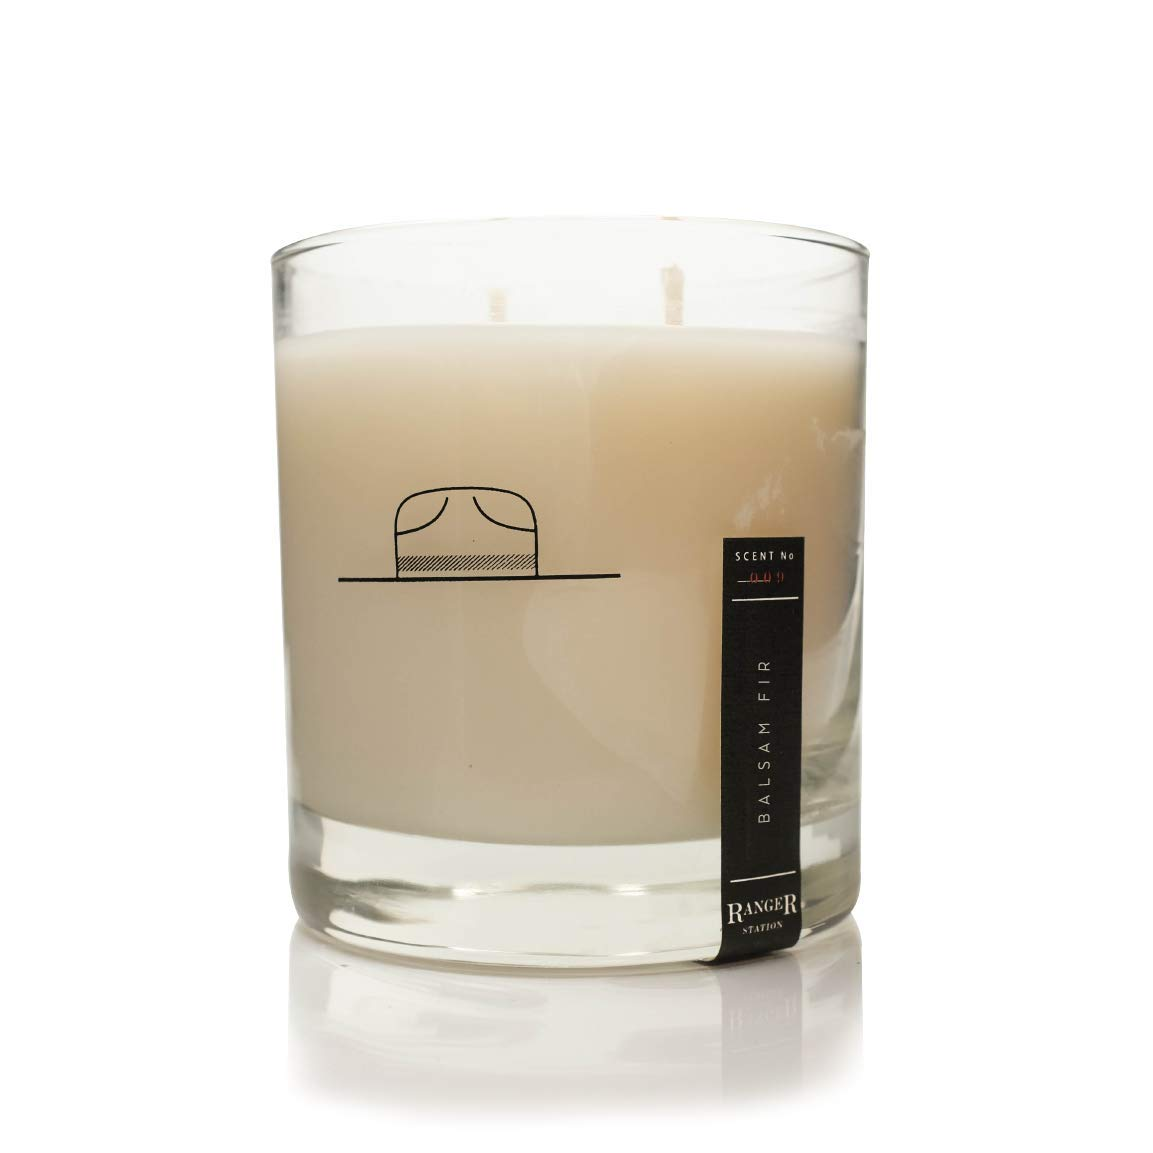 Ranger Station Balsam Fir Candle